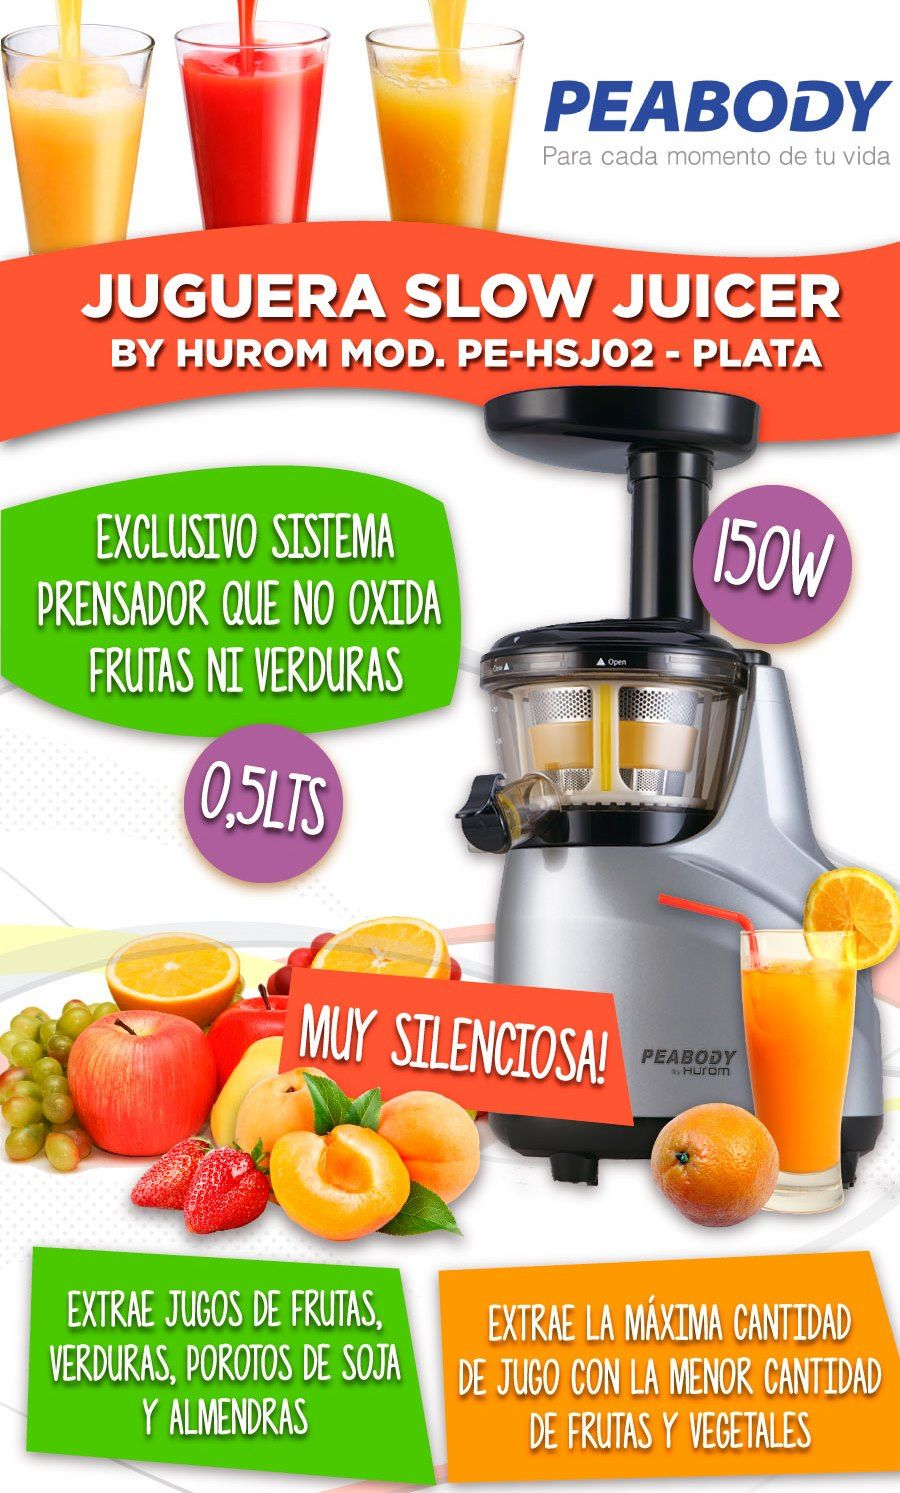 Melhor Slow Juicer Do Mercado : Juguera Slow Juicer Peabody Hurom 150w Acero Extractor Envio Confort Sur